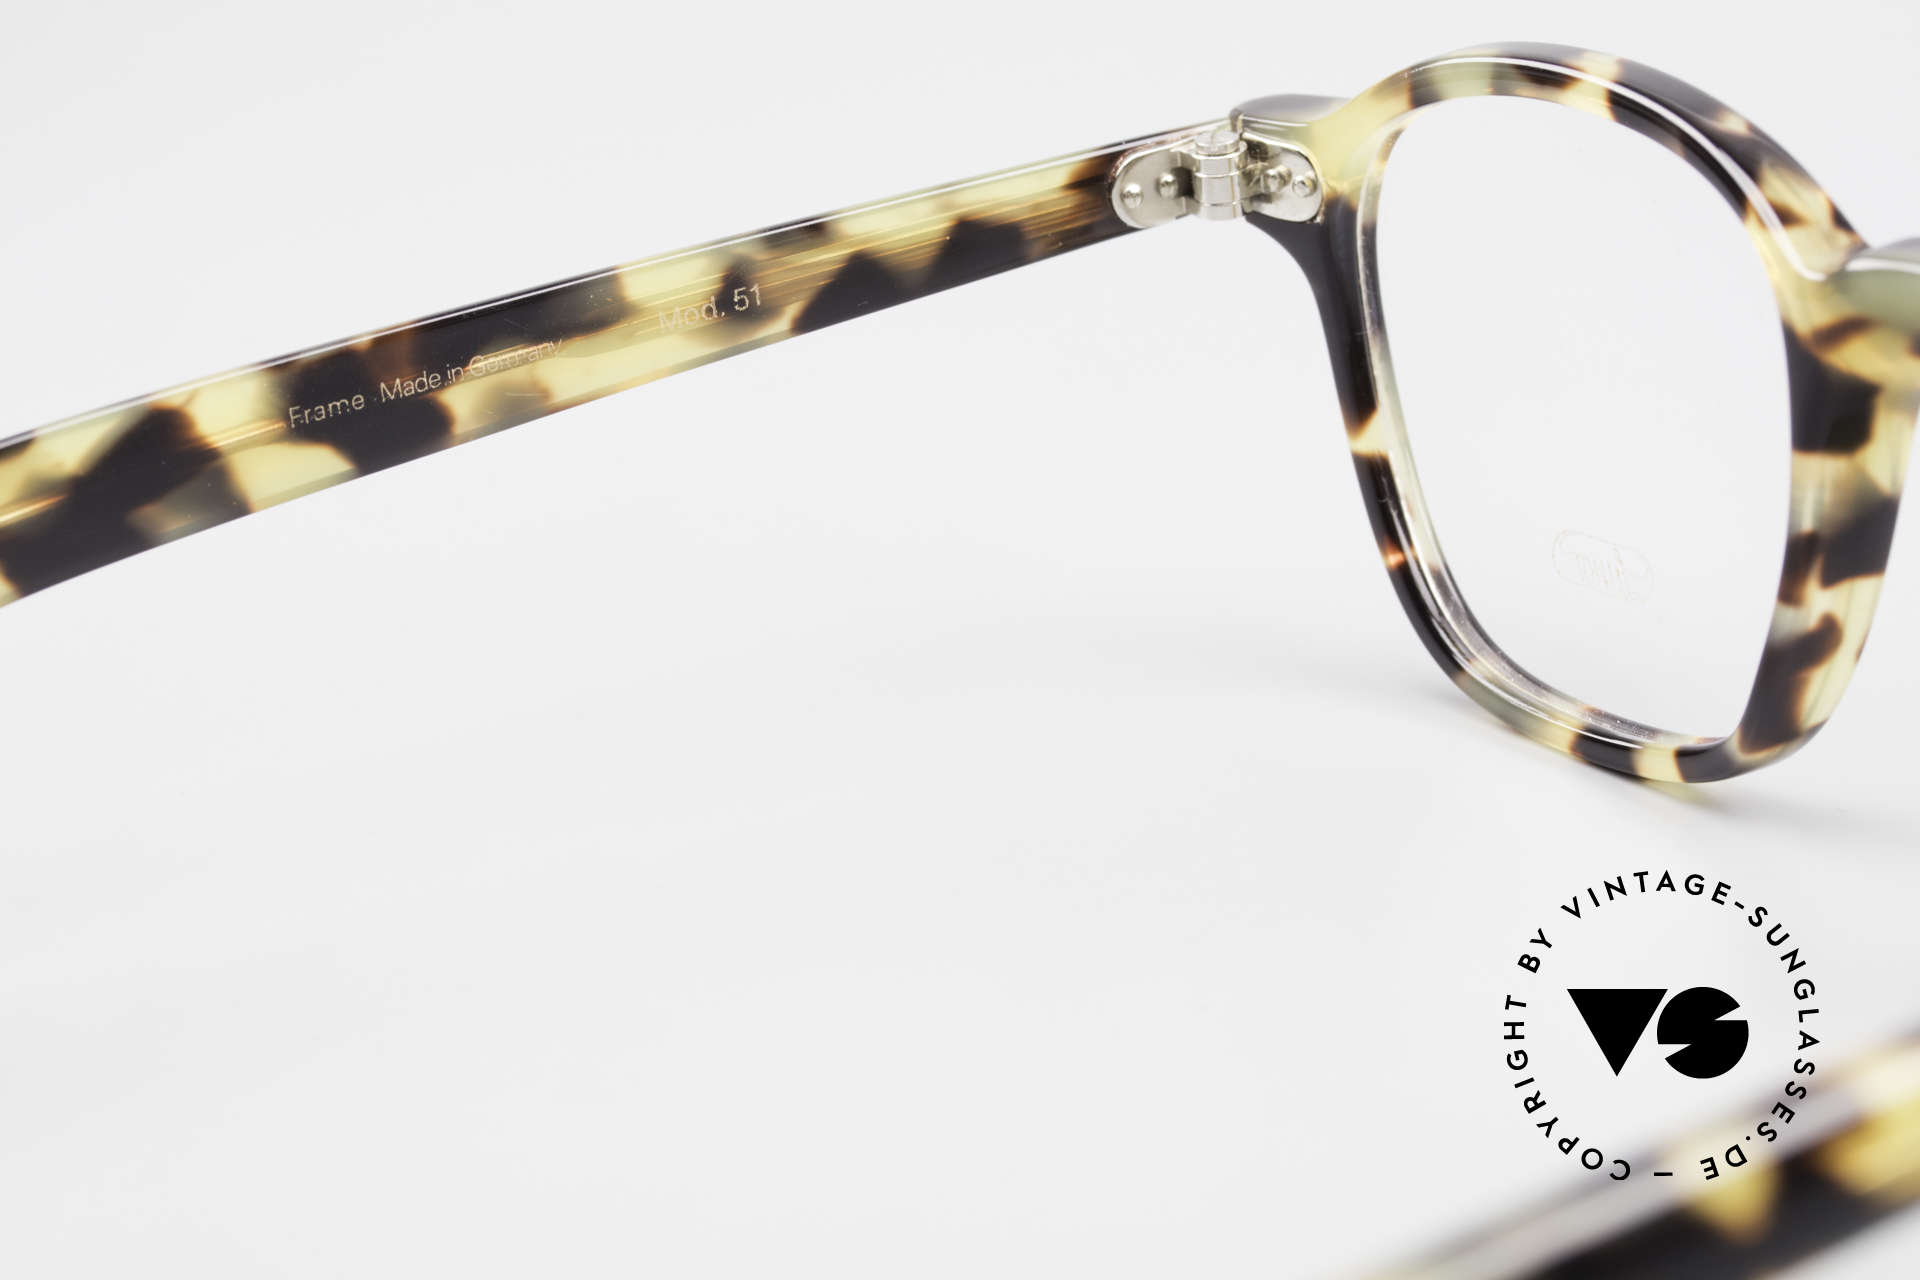 Lunor A51 Johnny Depp James Dean Specs, the demo lenses can be replaced with optical (sun) lenses, Made for Men